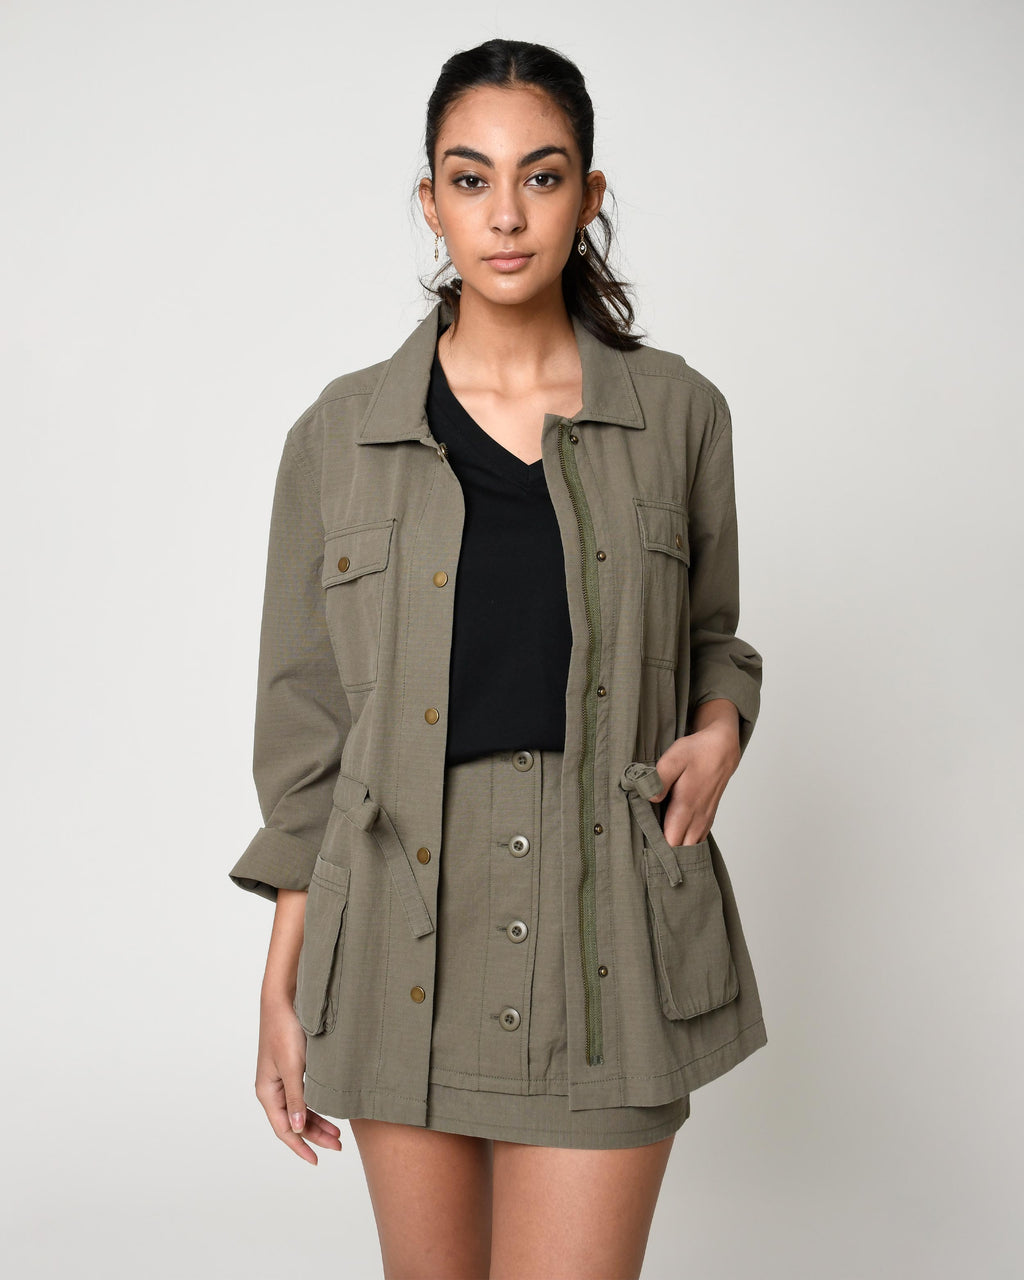 CJ19103 - ARMY RIPSTOP CARGO JACKET - outerwear - jackets - Our army cargo jacket is designed in a lightweight cotton to perfectly transition into spring. Featuring four front pockets, an adjustable cinched waist and a front zipper for closure. Add 1 line break Stylist Tip: Throw on over one of our easy linen dresses for cool spring nights.